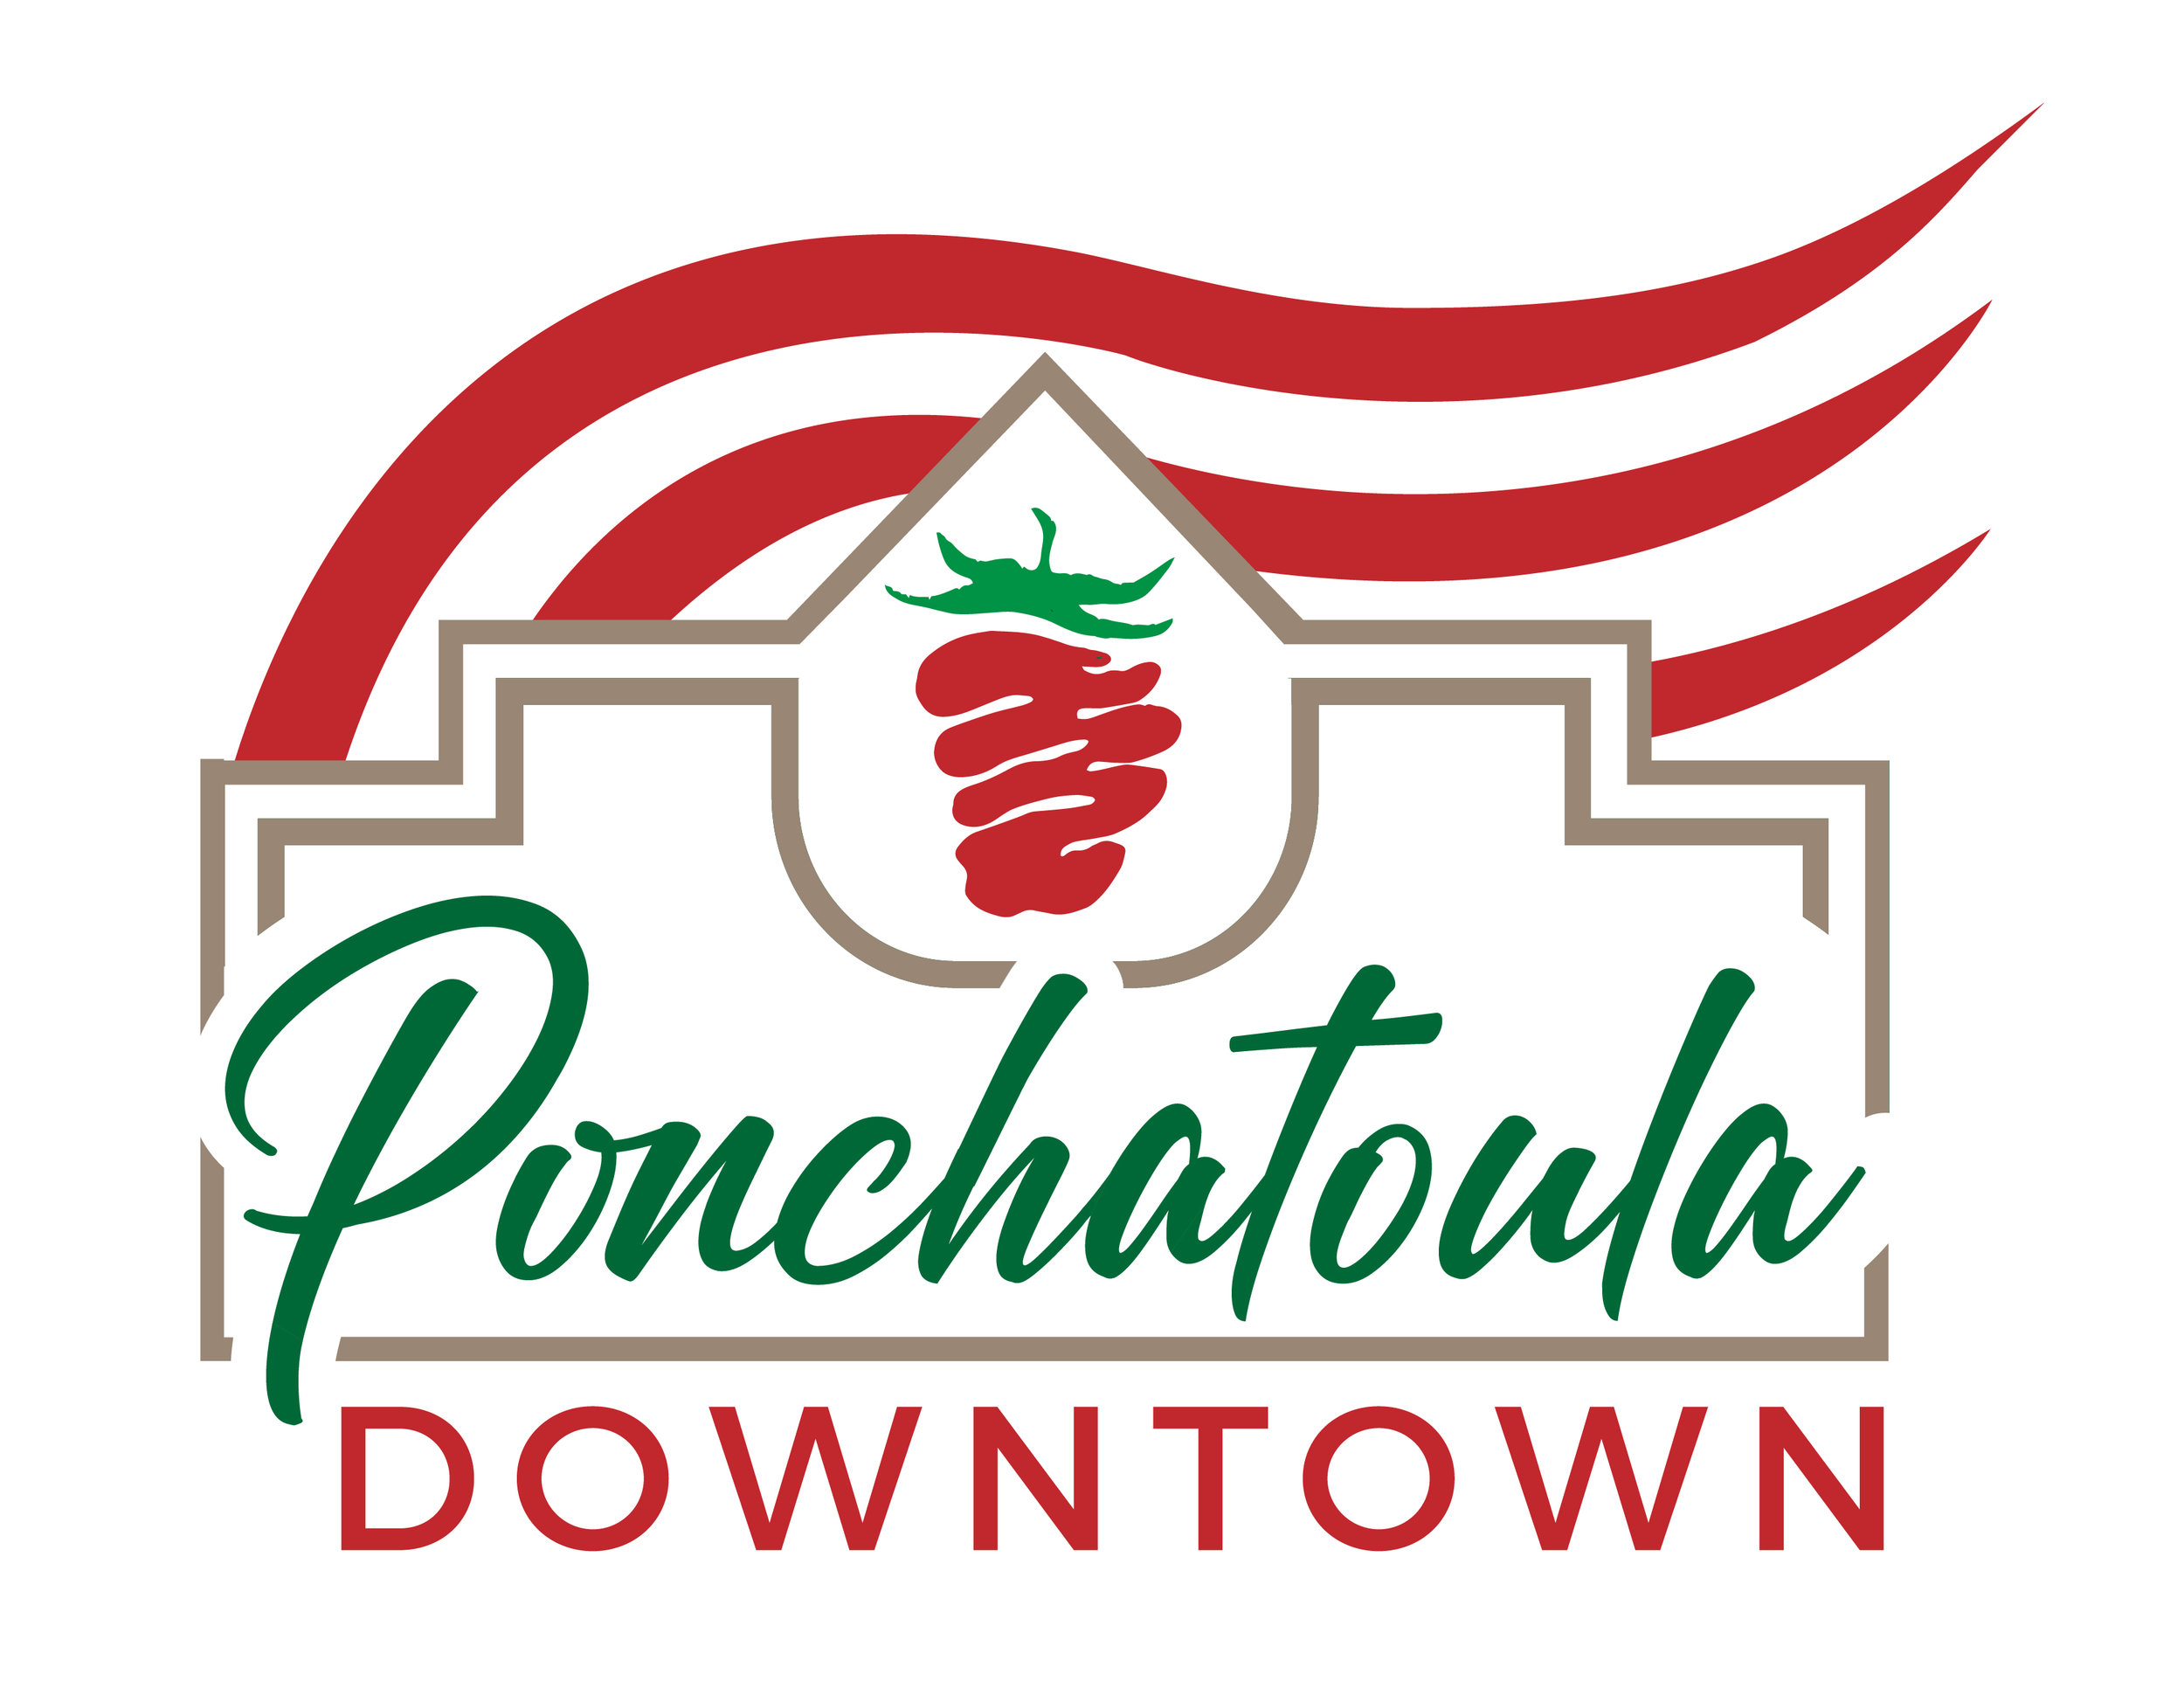 Downtown Ponchatoula Revitalization Program - 110 W. Hickory St., Ponchatoula LA 70454(985) 200-2937